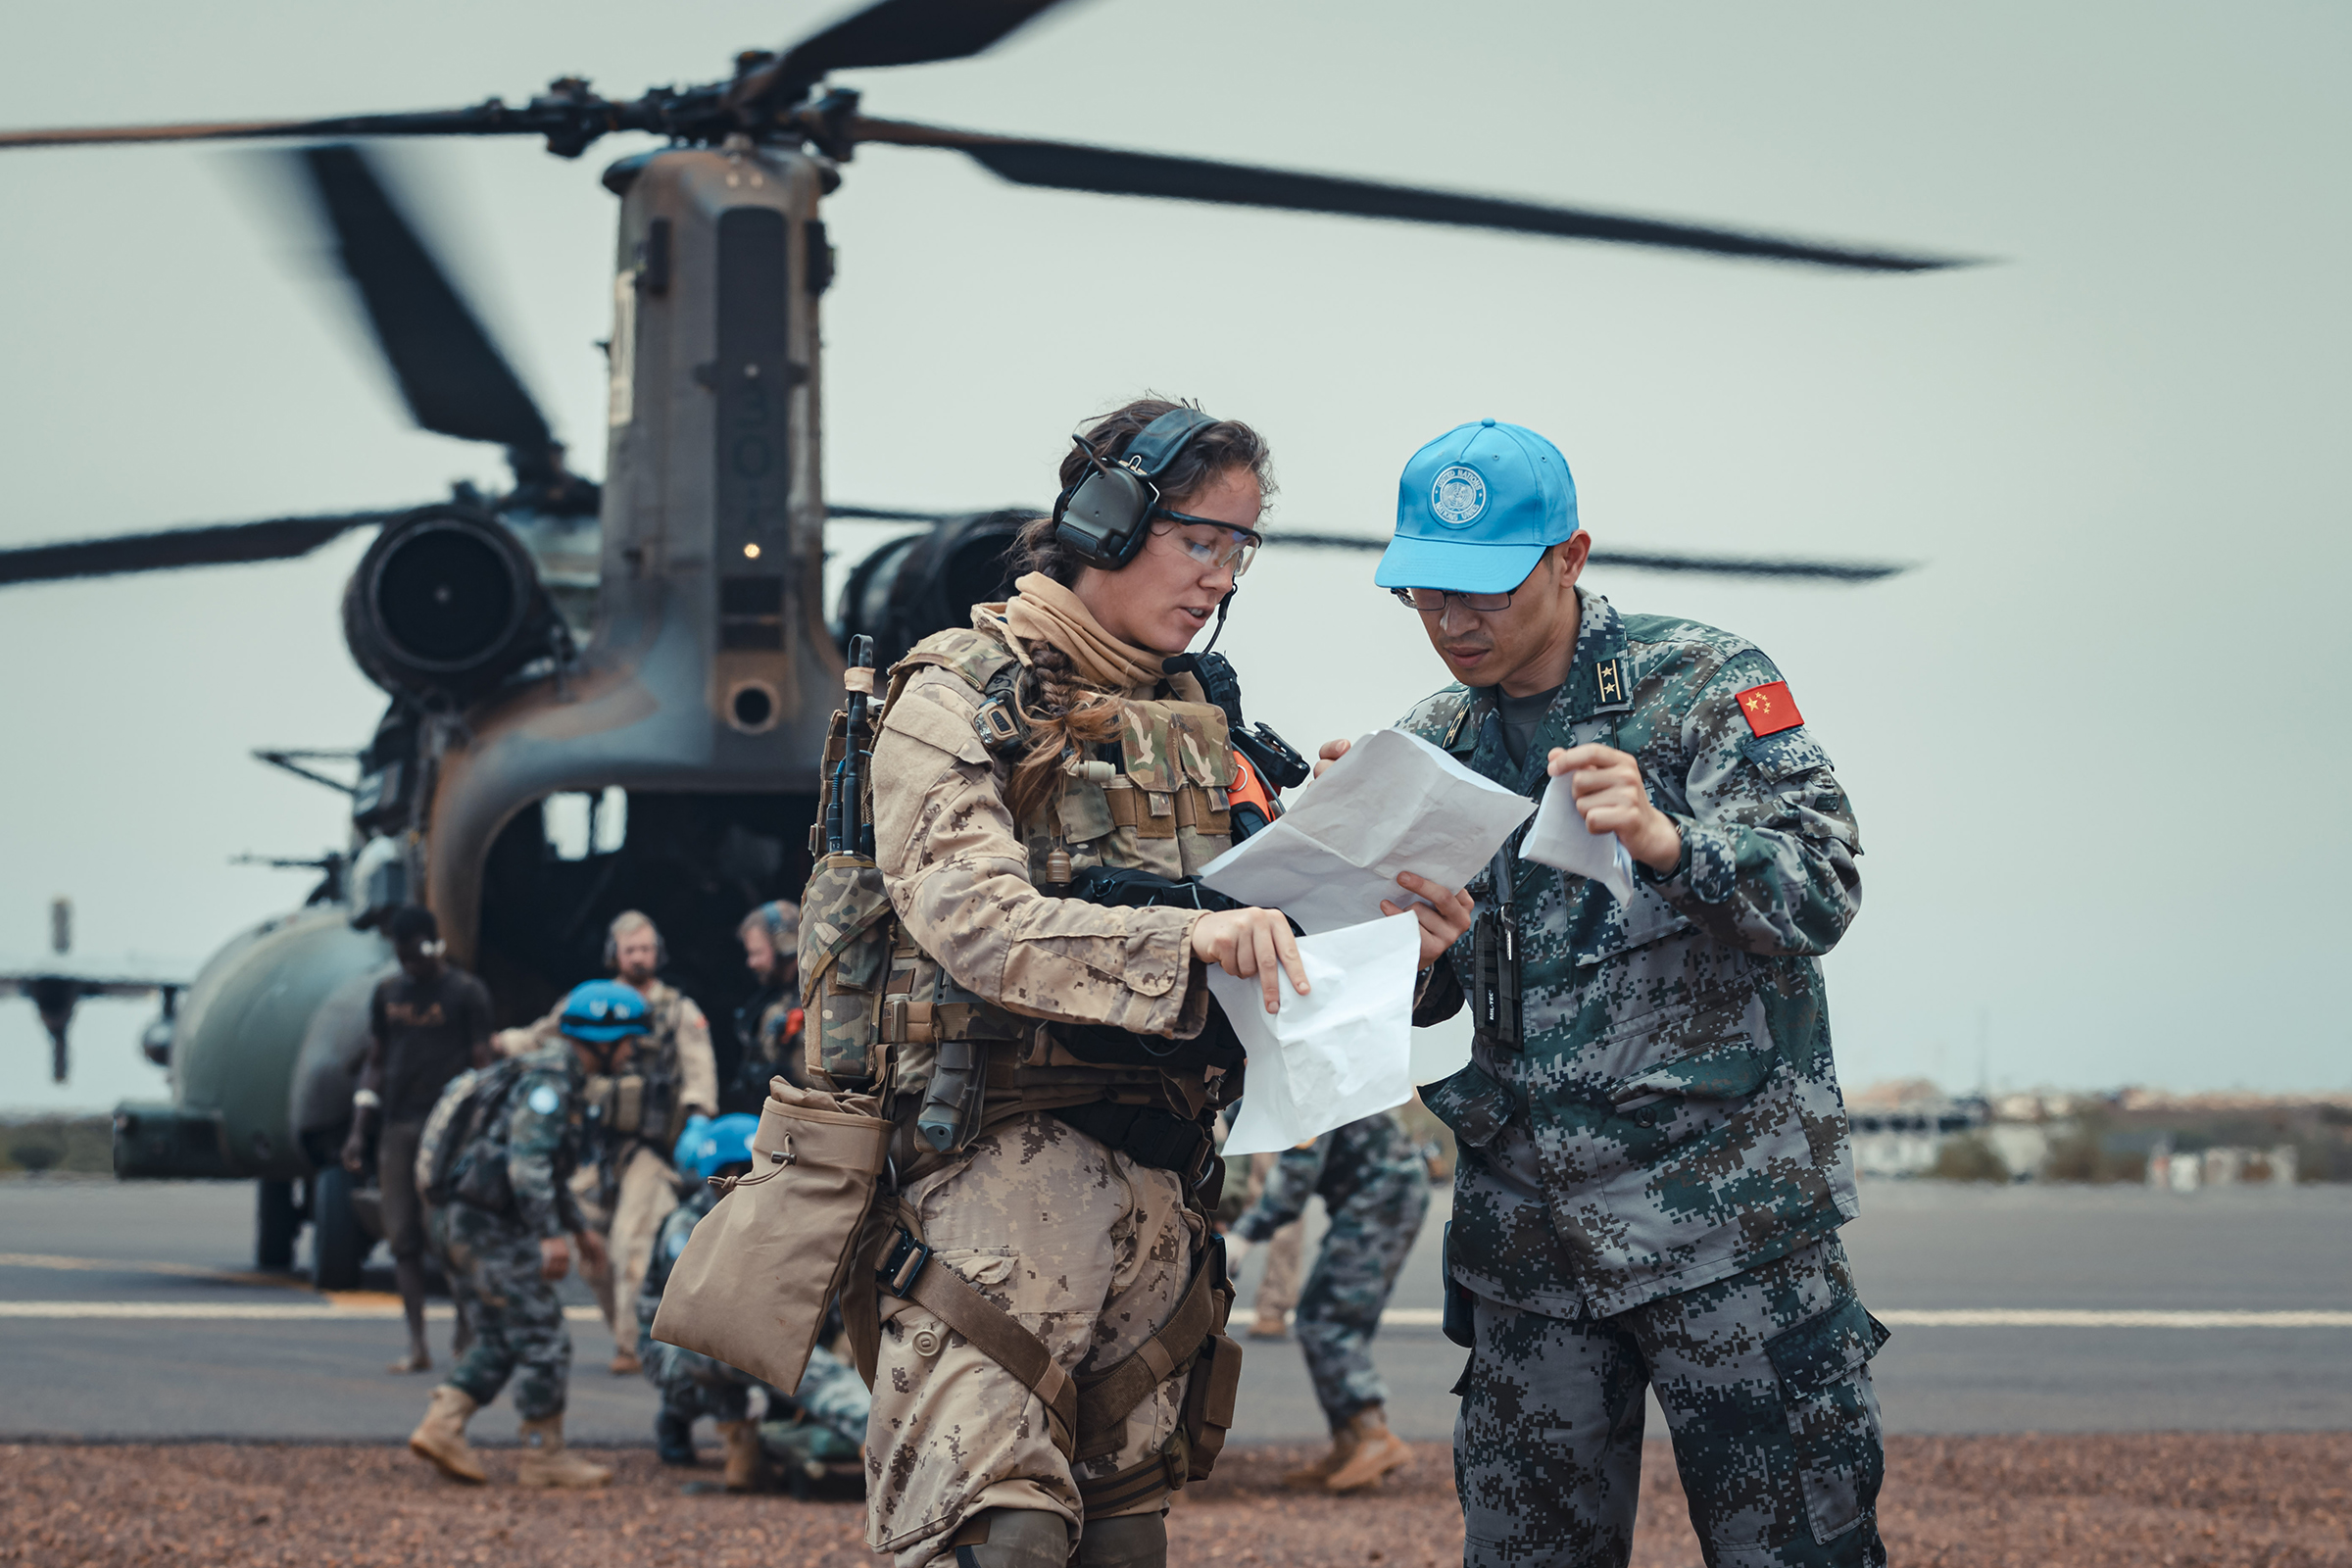 Members of Operation Presence-Mali conducted their eleventh aeromedical evacuation mission, treating two civilian contractors involved in an IED attack before transferring the casualties to a MINUSMA Role 2 hospital in Gao, near Camp Castor on August 16, 2019. PHOTO: Corporal Richard Lessard, TM03-2019-0007-002